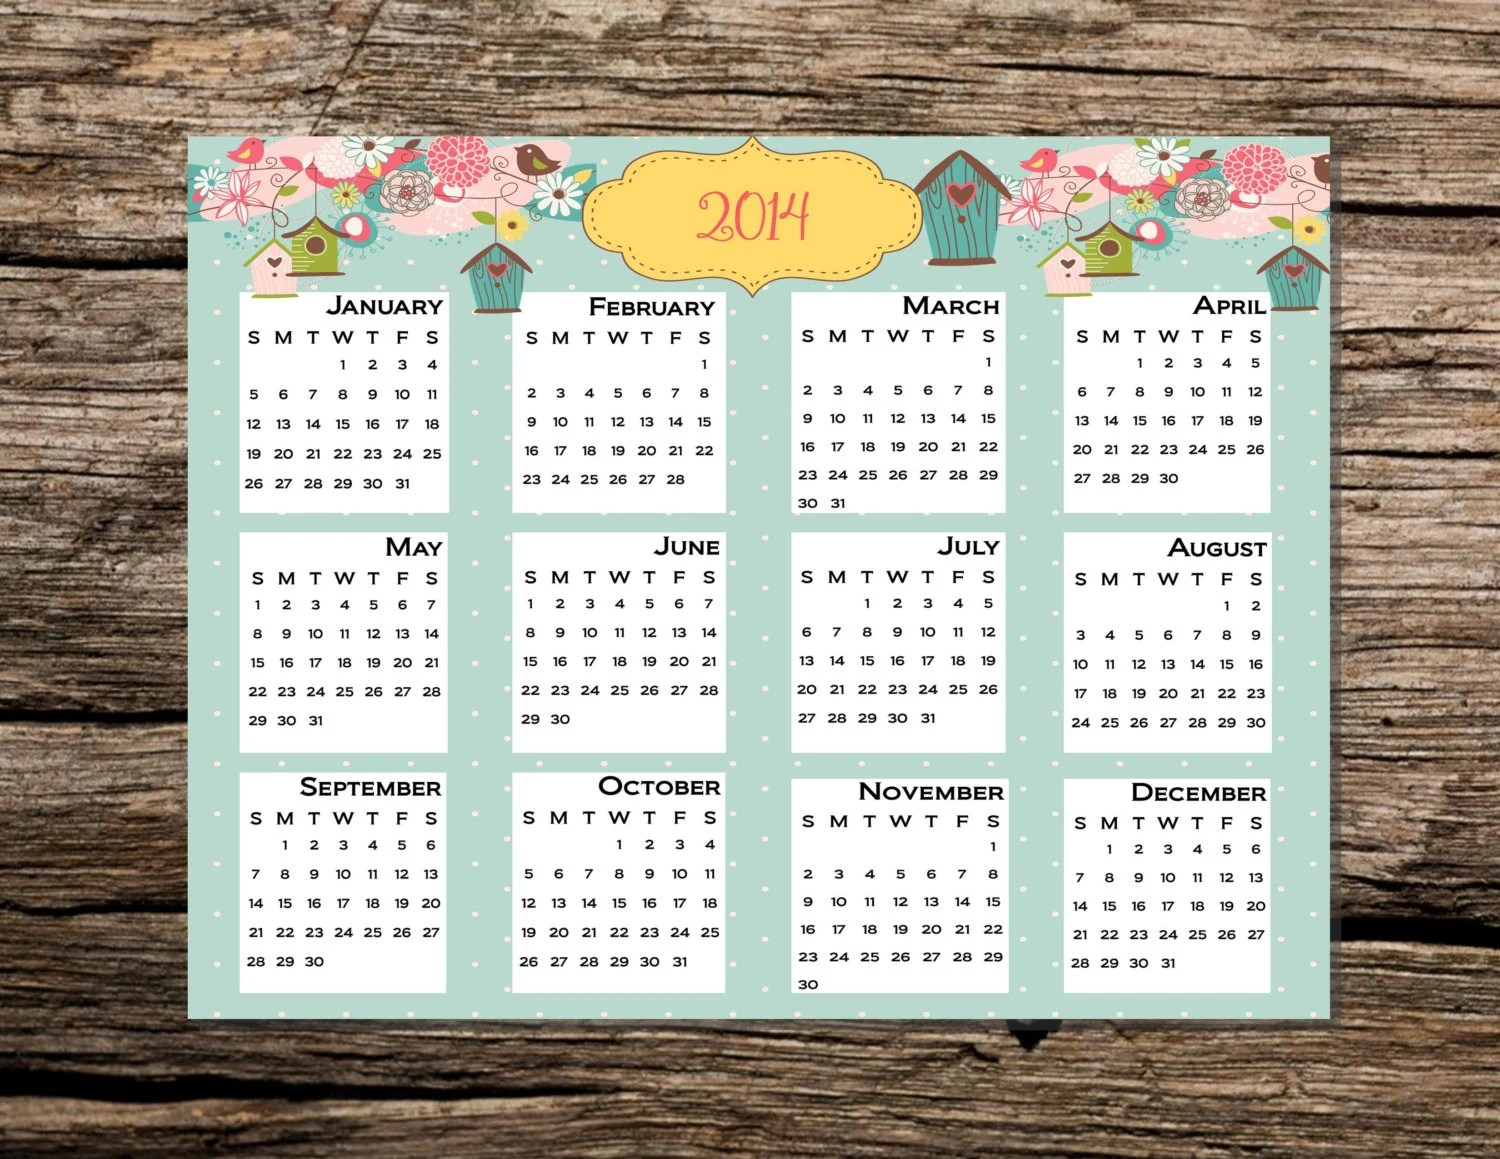 Year Whole Calendar 2006 One Page Printable